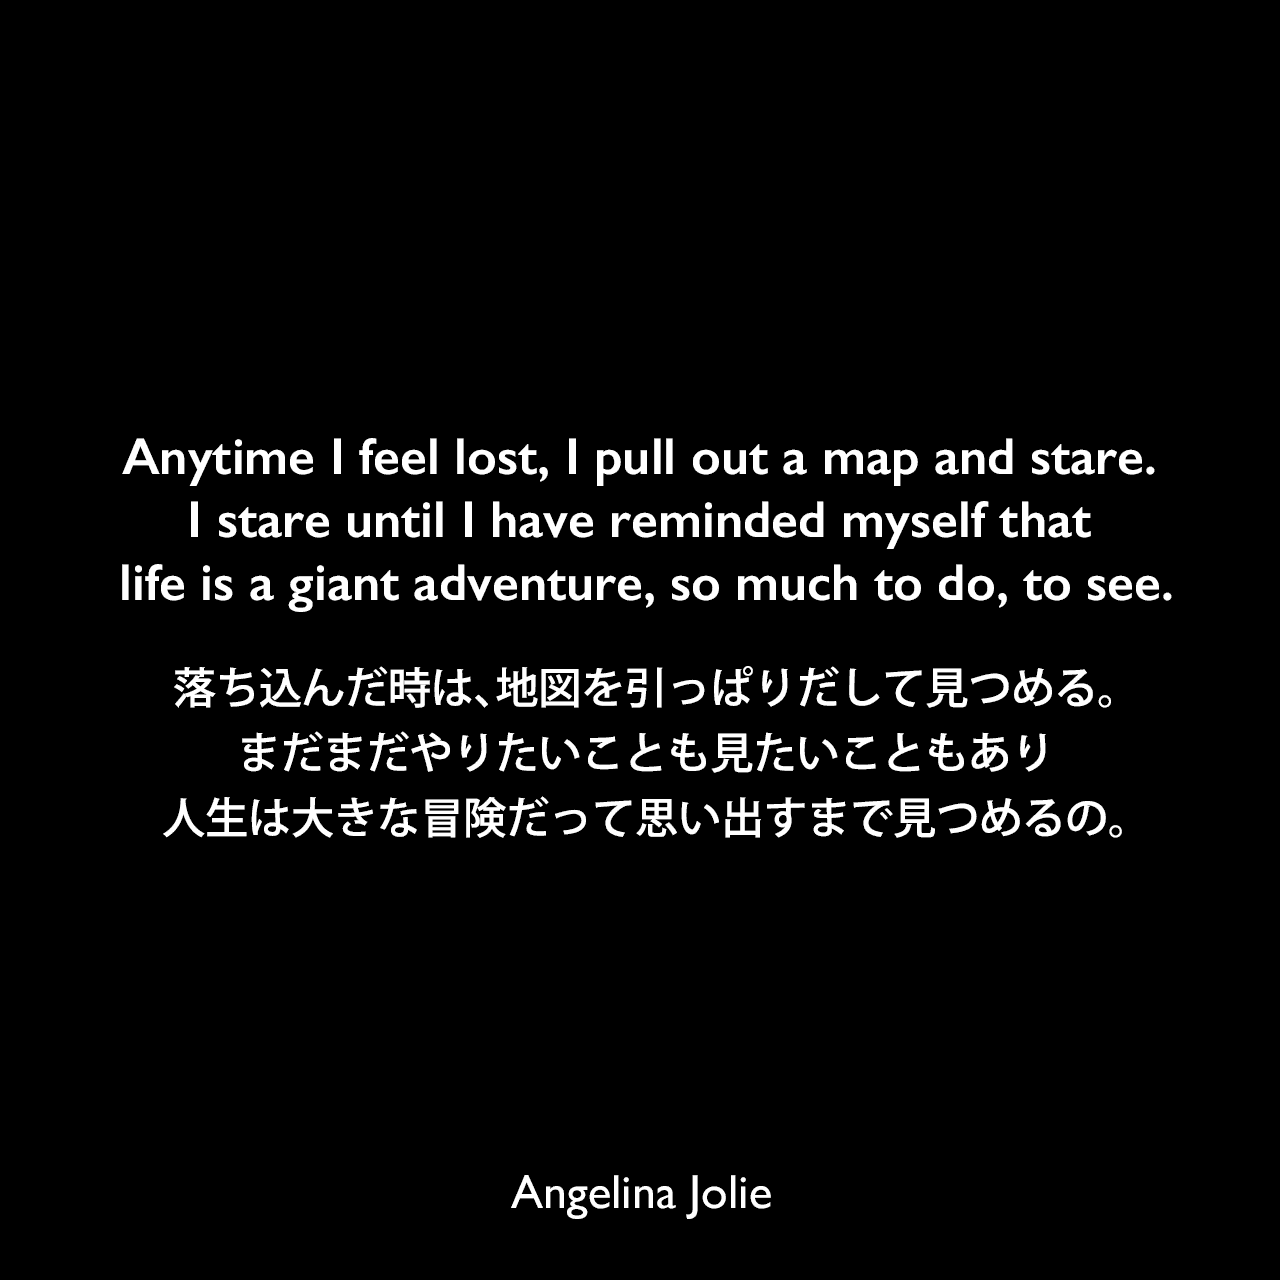 Anytime I feel lost, I pull out a map and stare. I stare until I have reminded myself that life is a giant adventure, so much to do, to see.落ち込んだ時は、地図を引っぱりだして見つめる。まだまだやりたいことも見たいこともあり、人生は大きな冒険だって思い出すまで見つめるの。Angelina Jolie